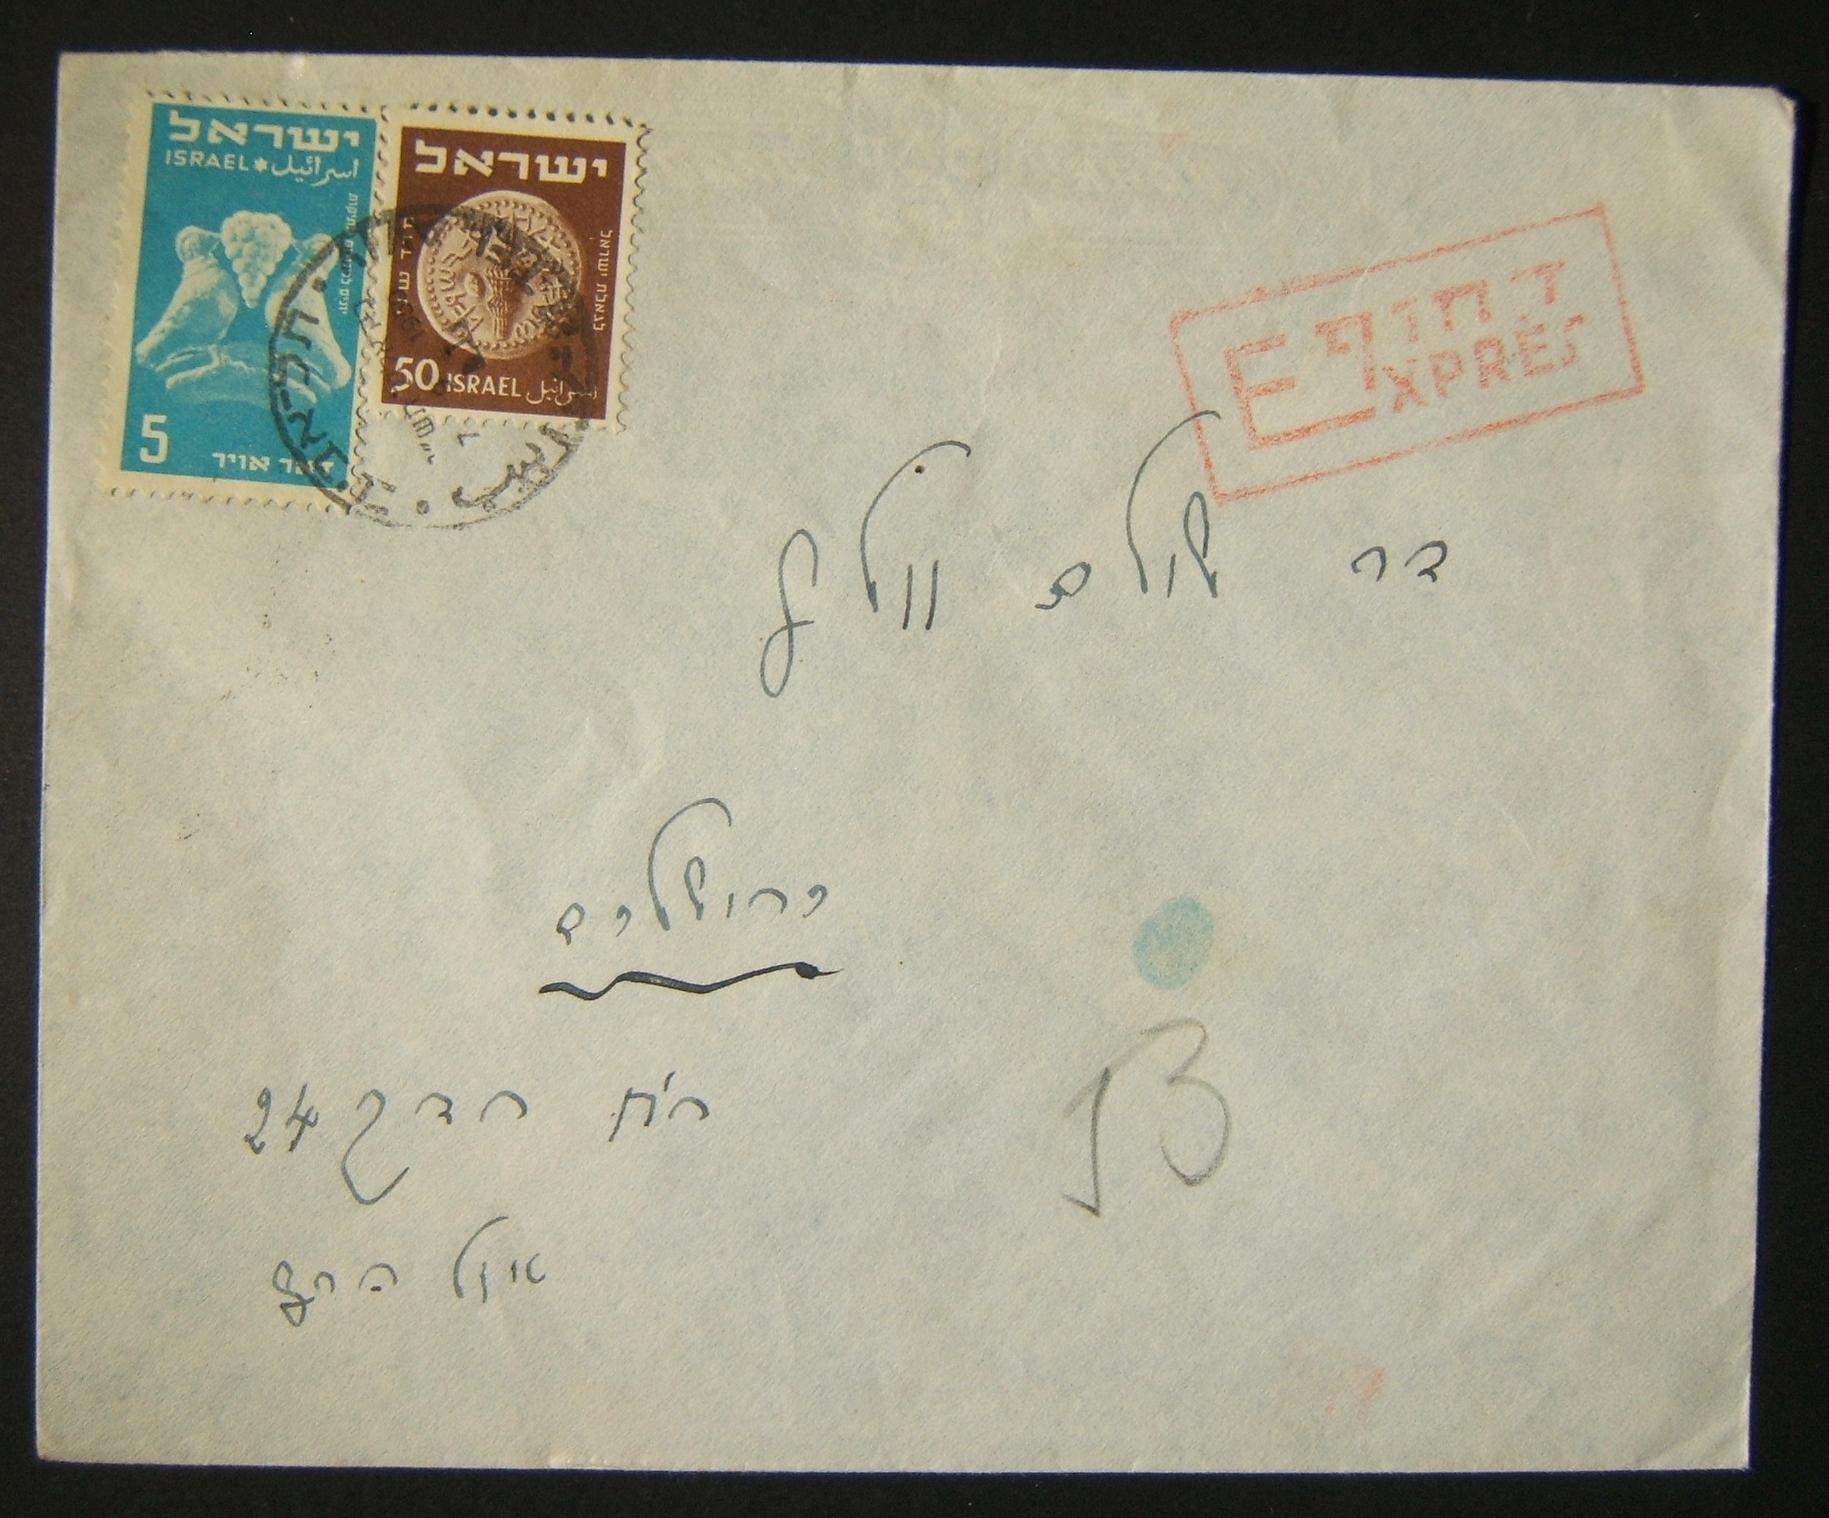 1950 1st airmail / PO's, rates & routes: 7-9-1950